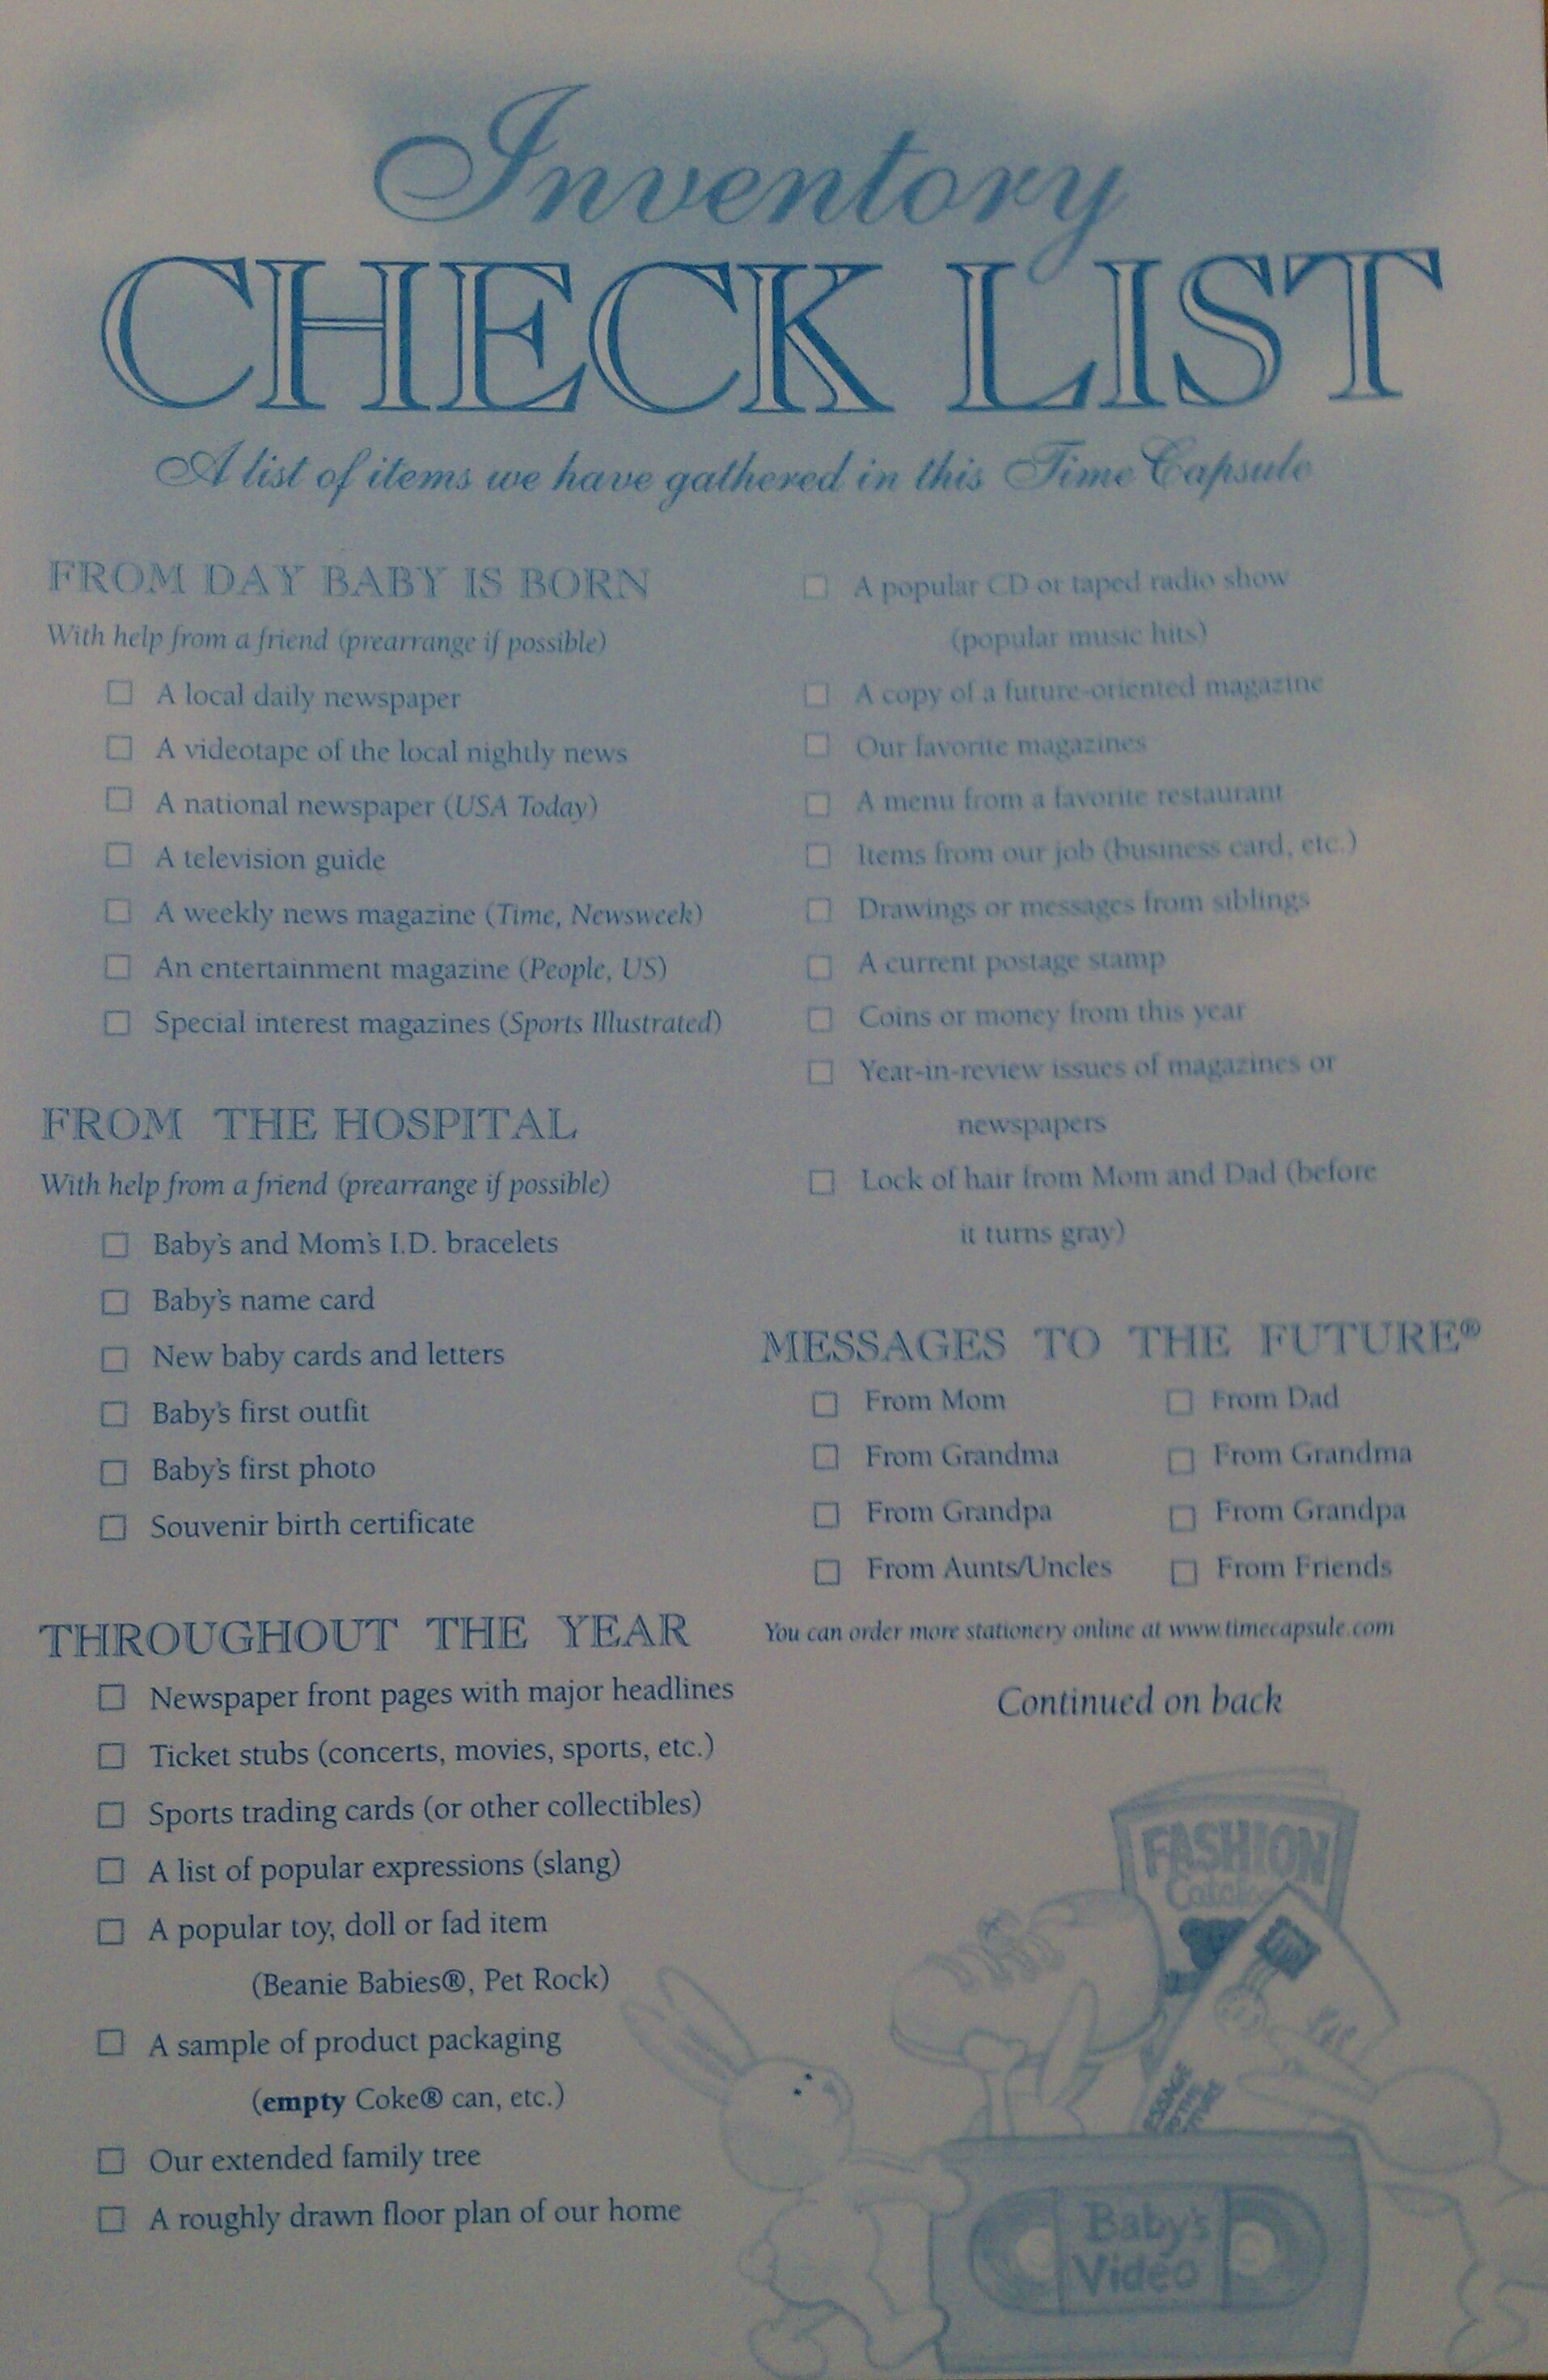 Baby Time Capsule On Pinterest: Baby Time Capsule - Inventory Checklist